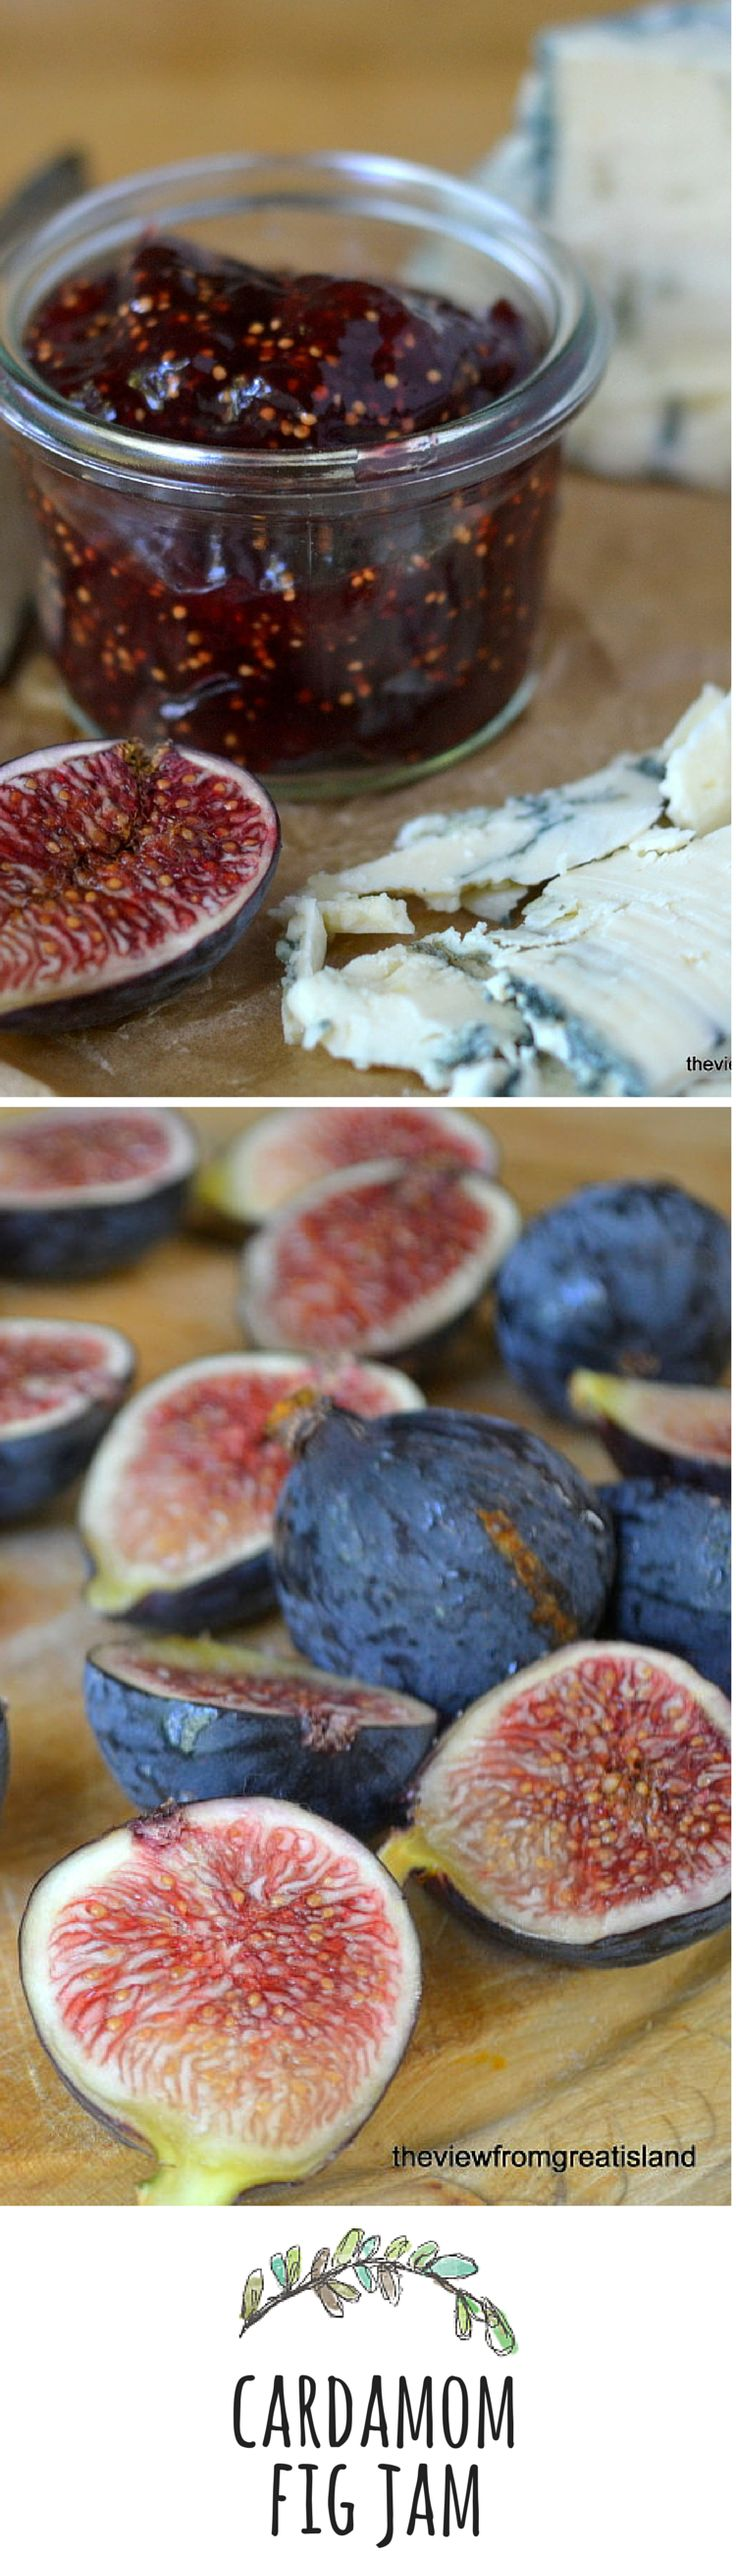 Delicious cardamom fig jam. Have it with with cheese, on toast, or swirled in yogurt.